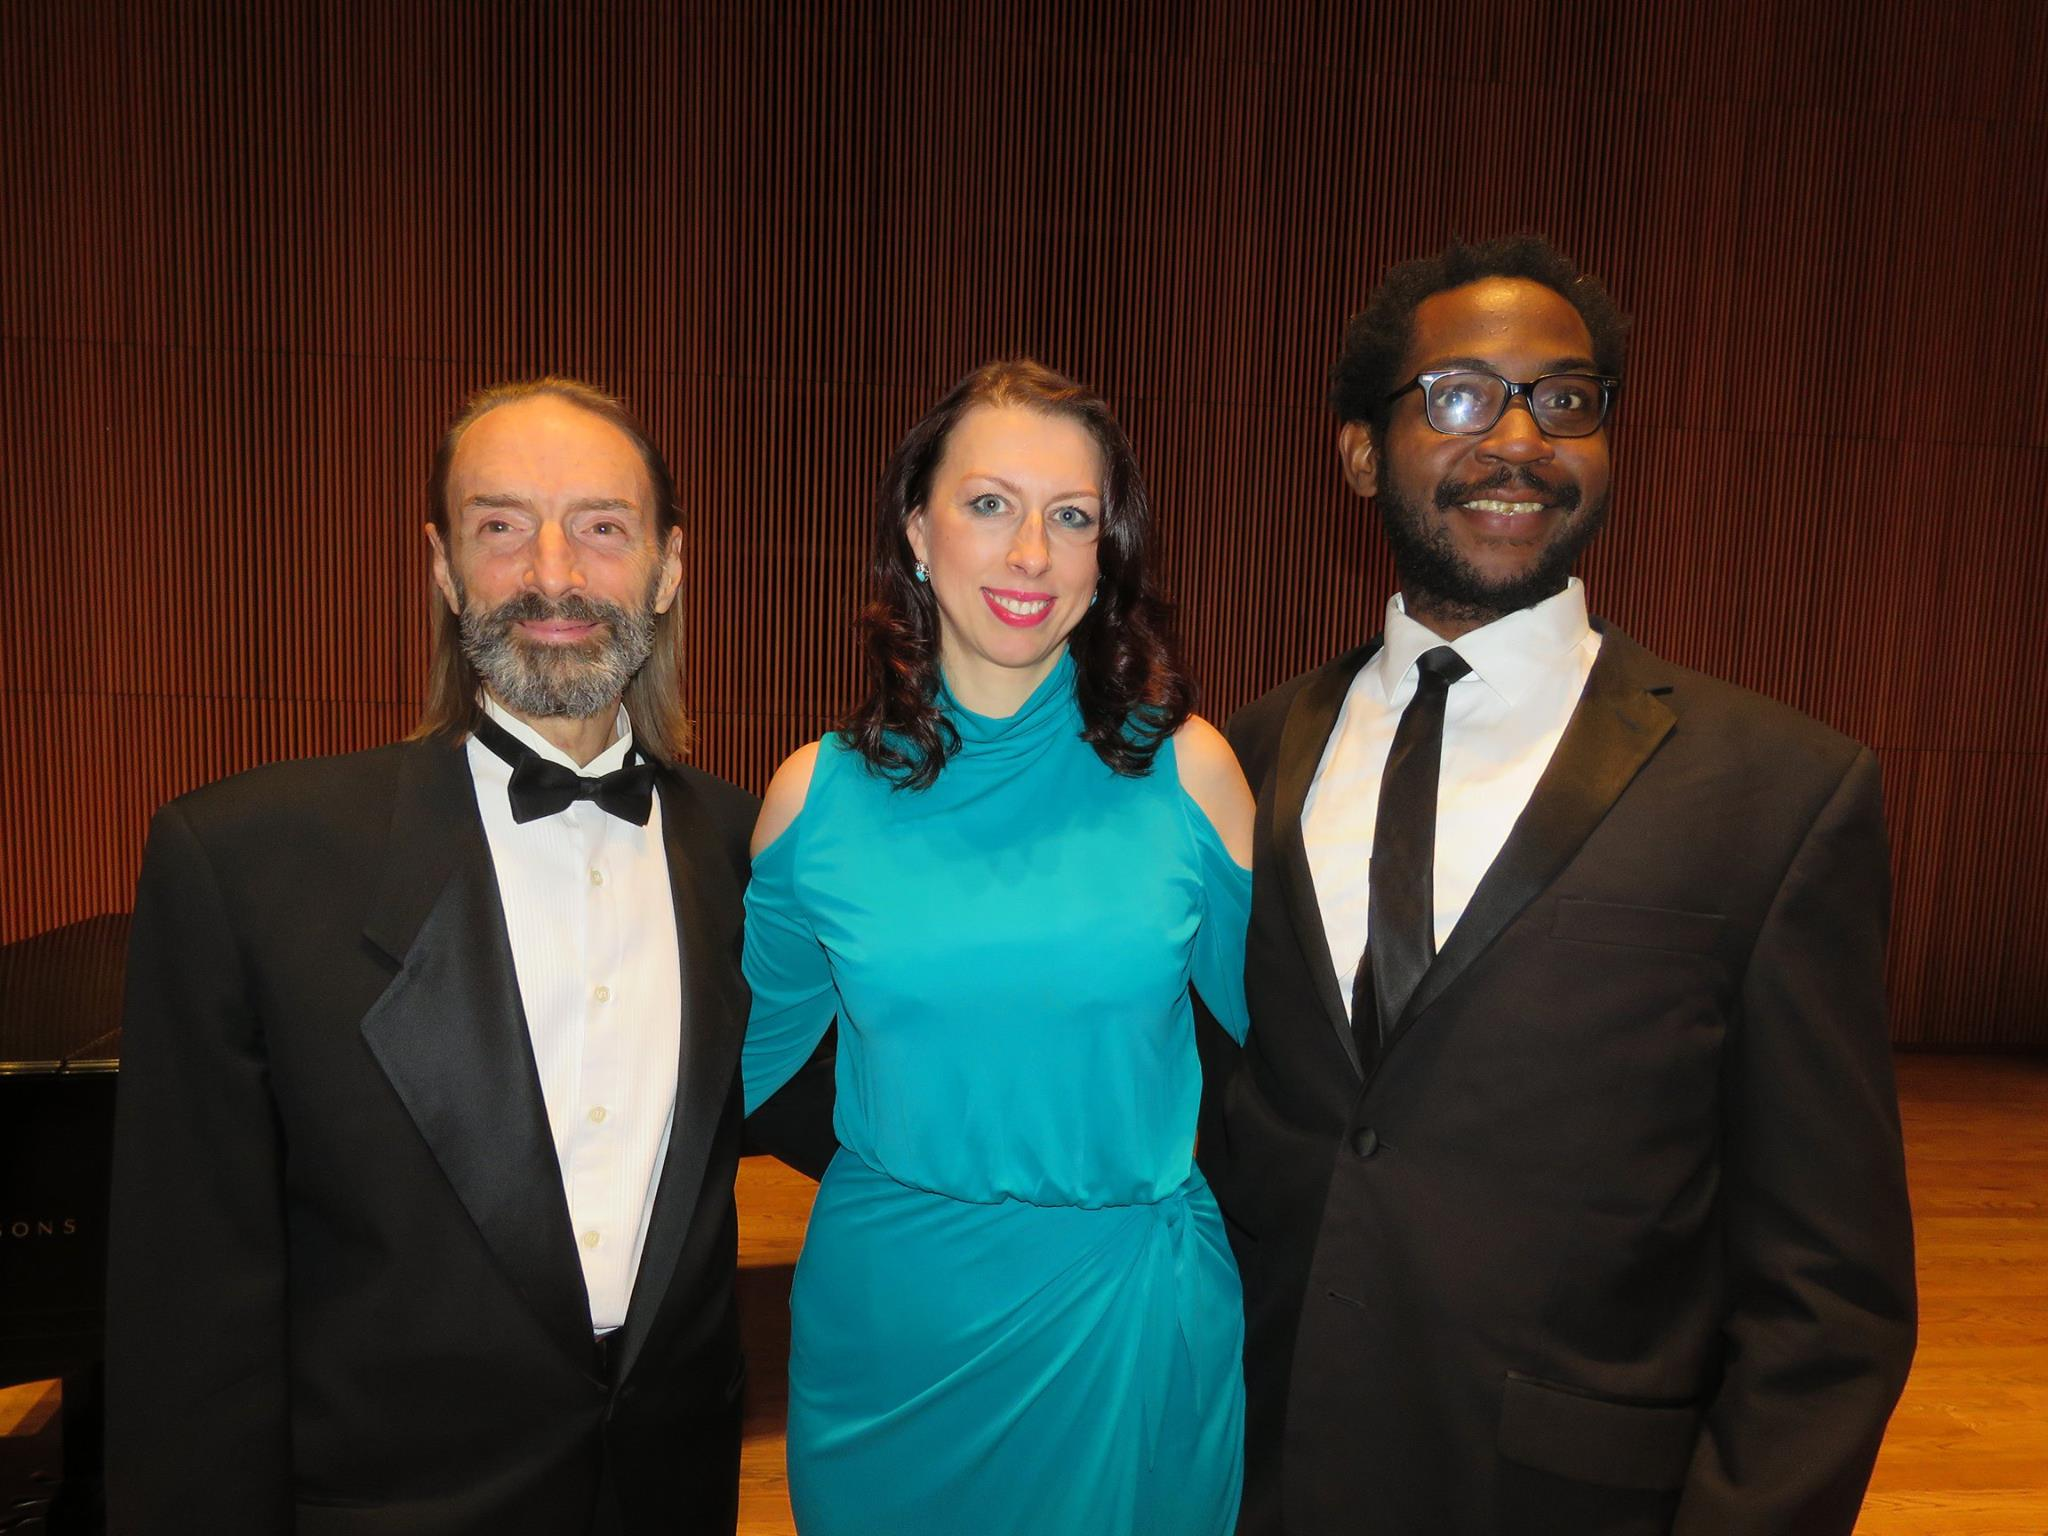 From Left: Me, Mezzo =-Soprano Viktoryia Koreneva, Tenor Lindell Carter